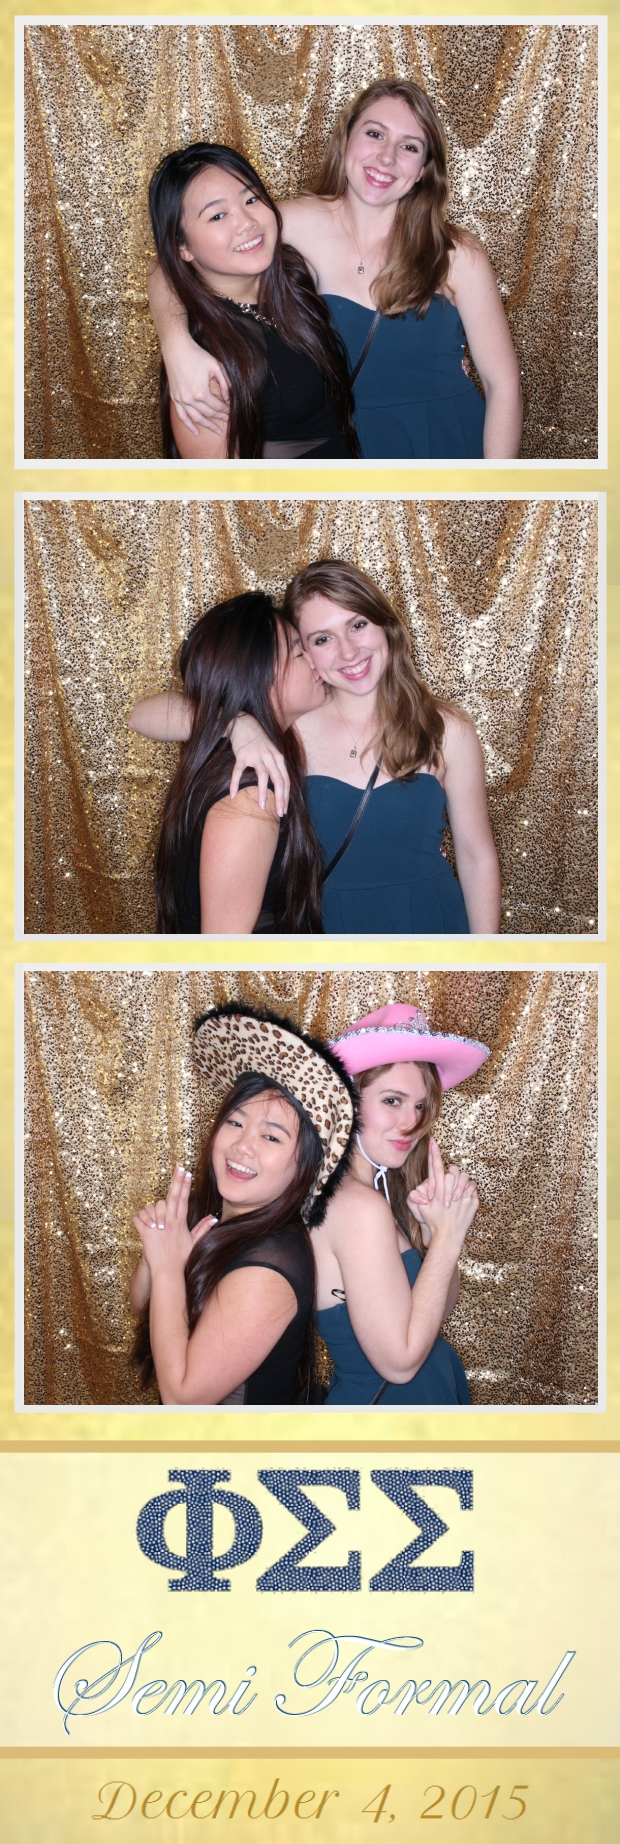 Guest House Events Photo Booth Phi Sigma Sigma Semi Formal (65).jpg